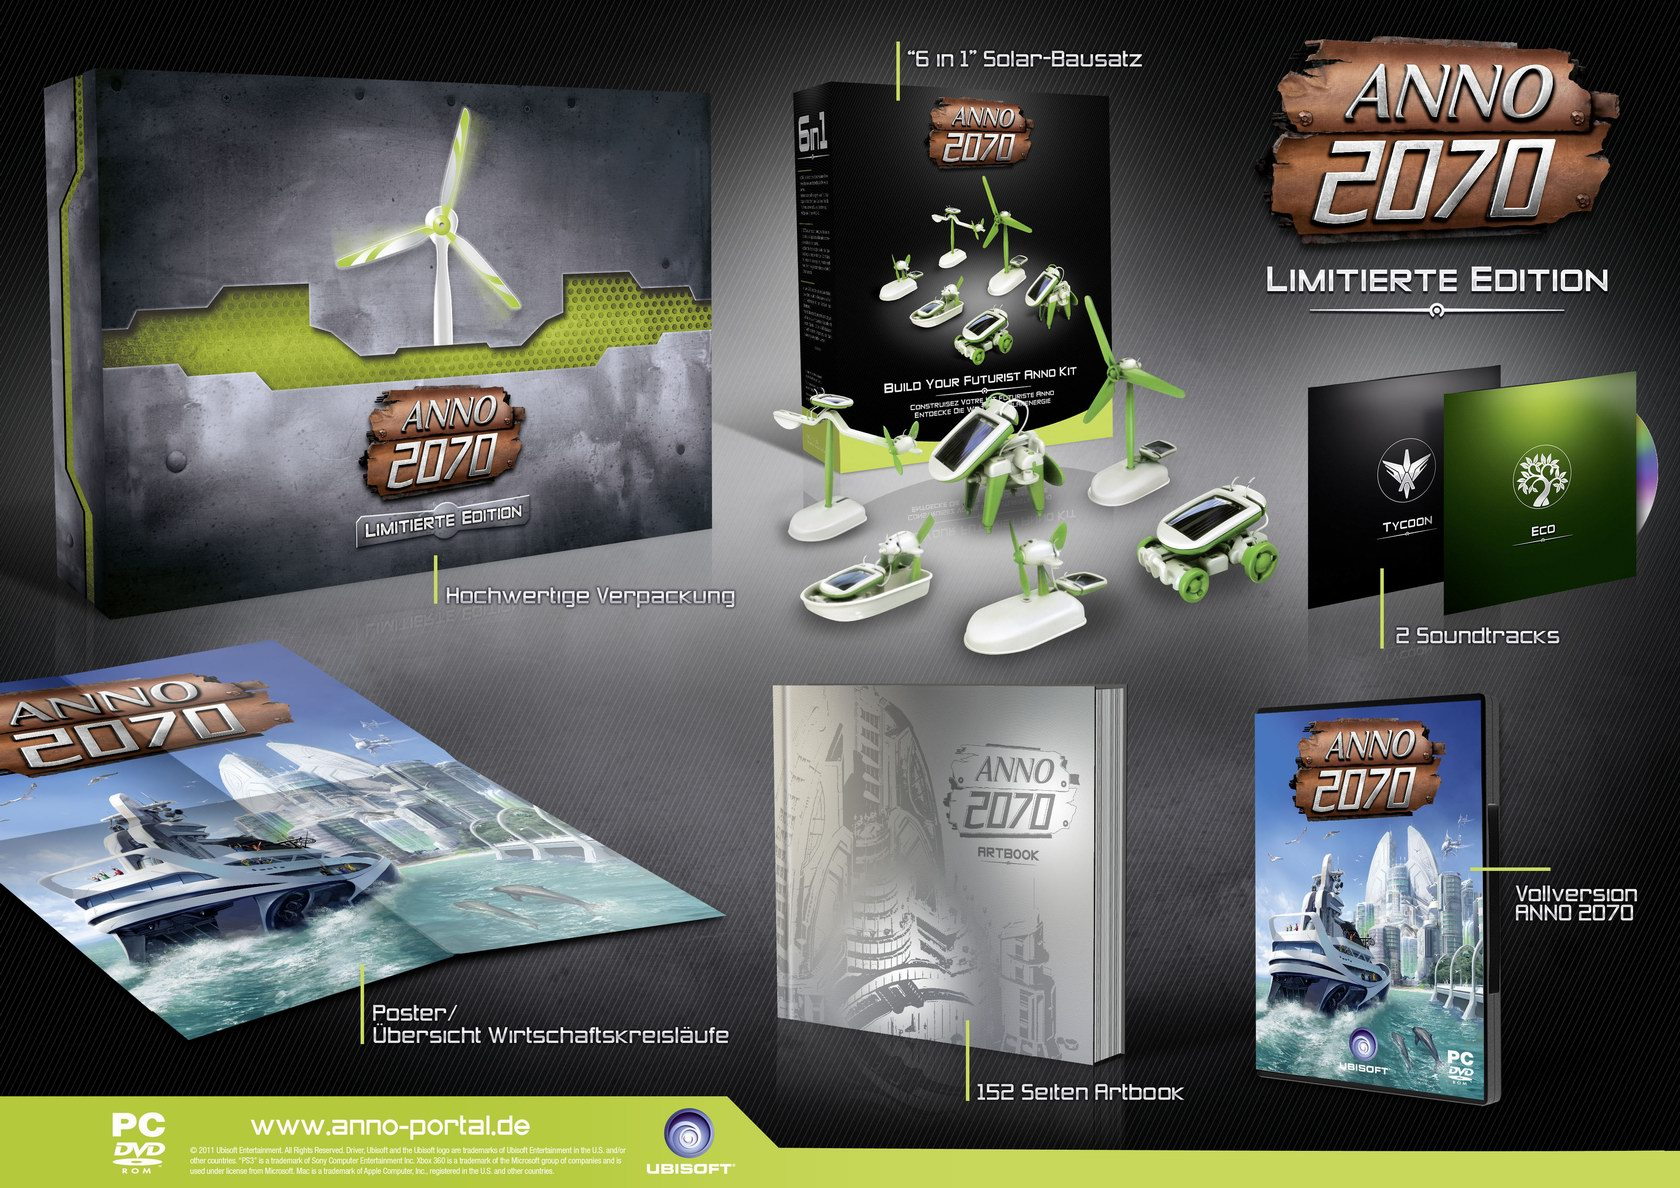 Anno_2070_Full_Collector_Edition_Mock_Up_3D_GER_NO_RATING.jpg